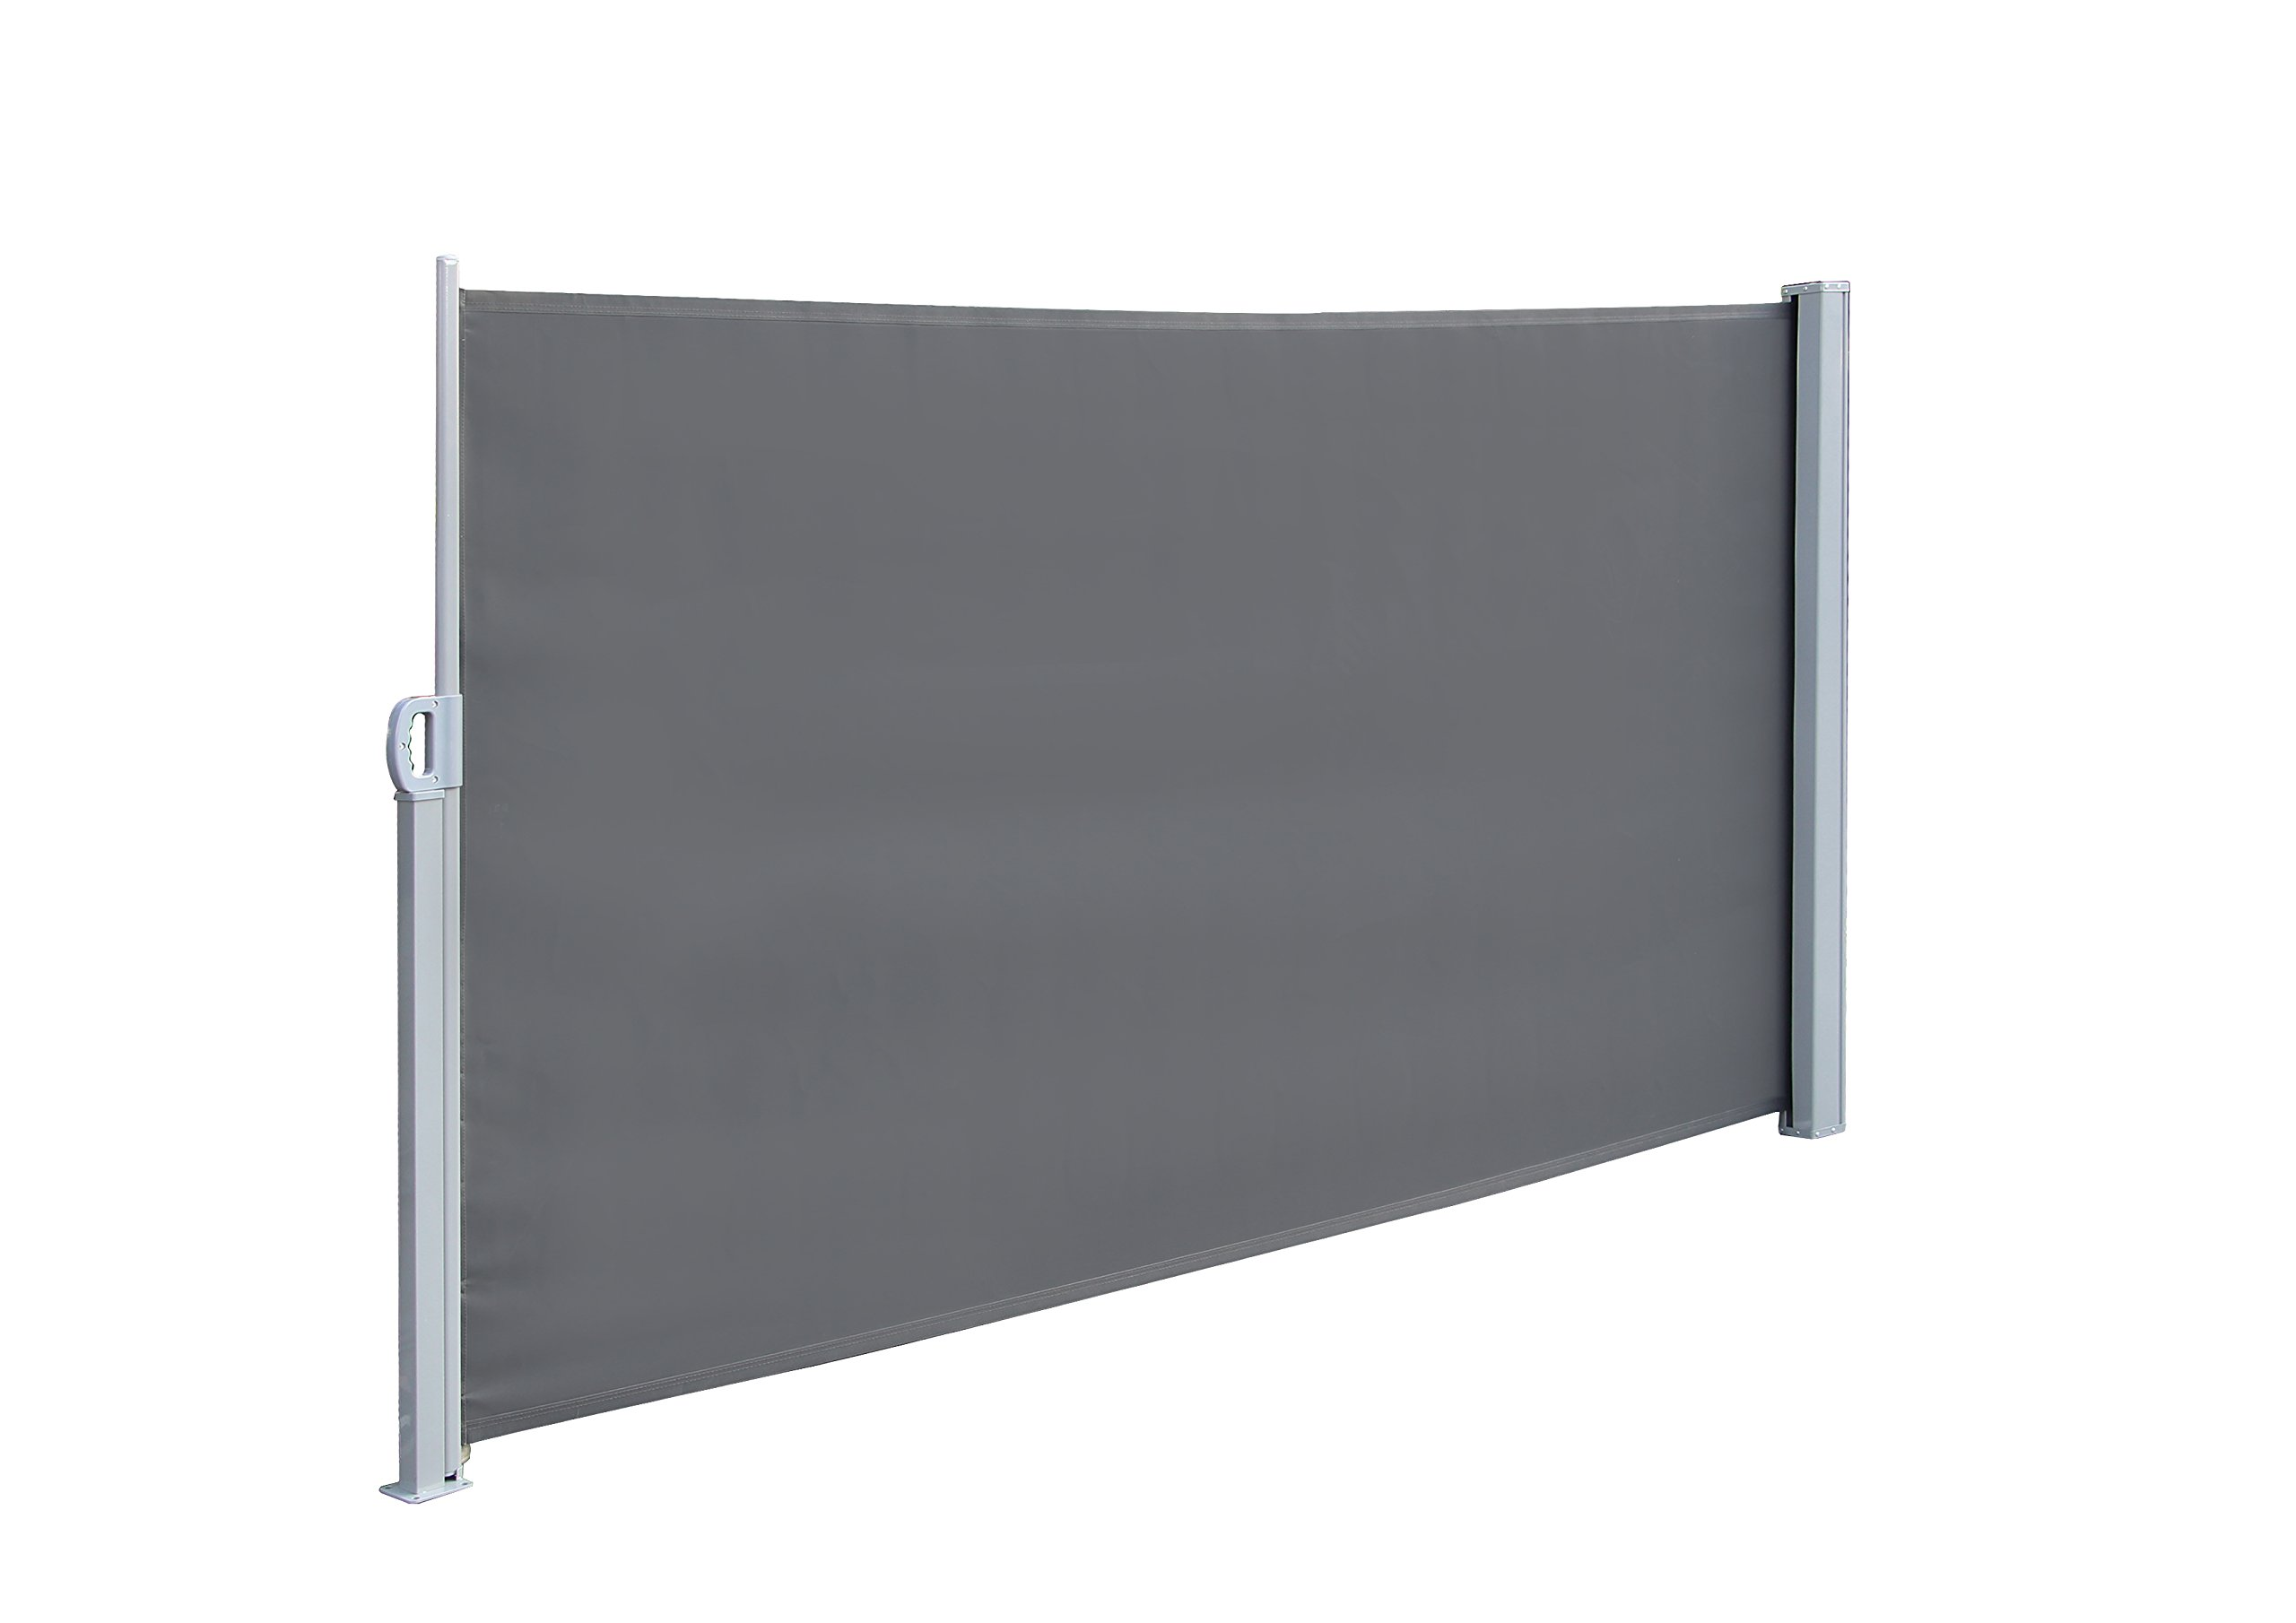 Simlife Retractable Side Awning Folding Screen Patio Garden Outdoor Privacy Divider with Steel Support Pole, 70.8'' X 117.6''180G Light Weight(Gray)